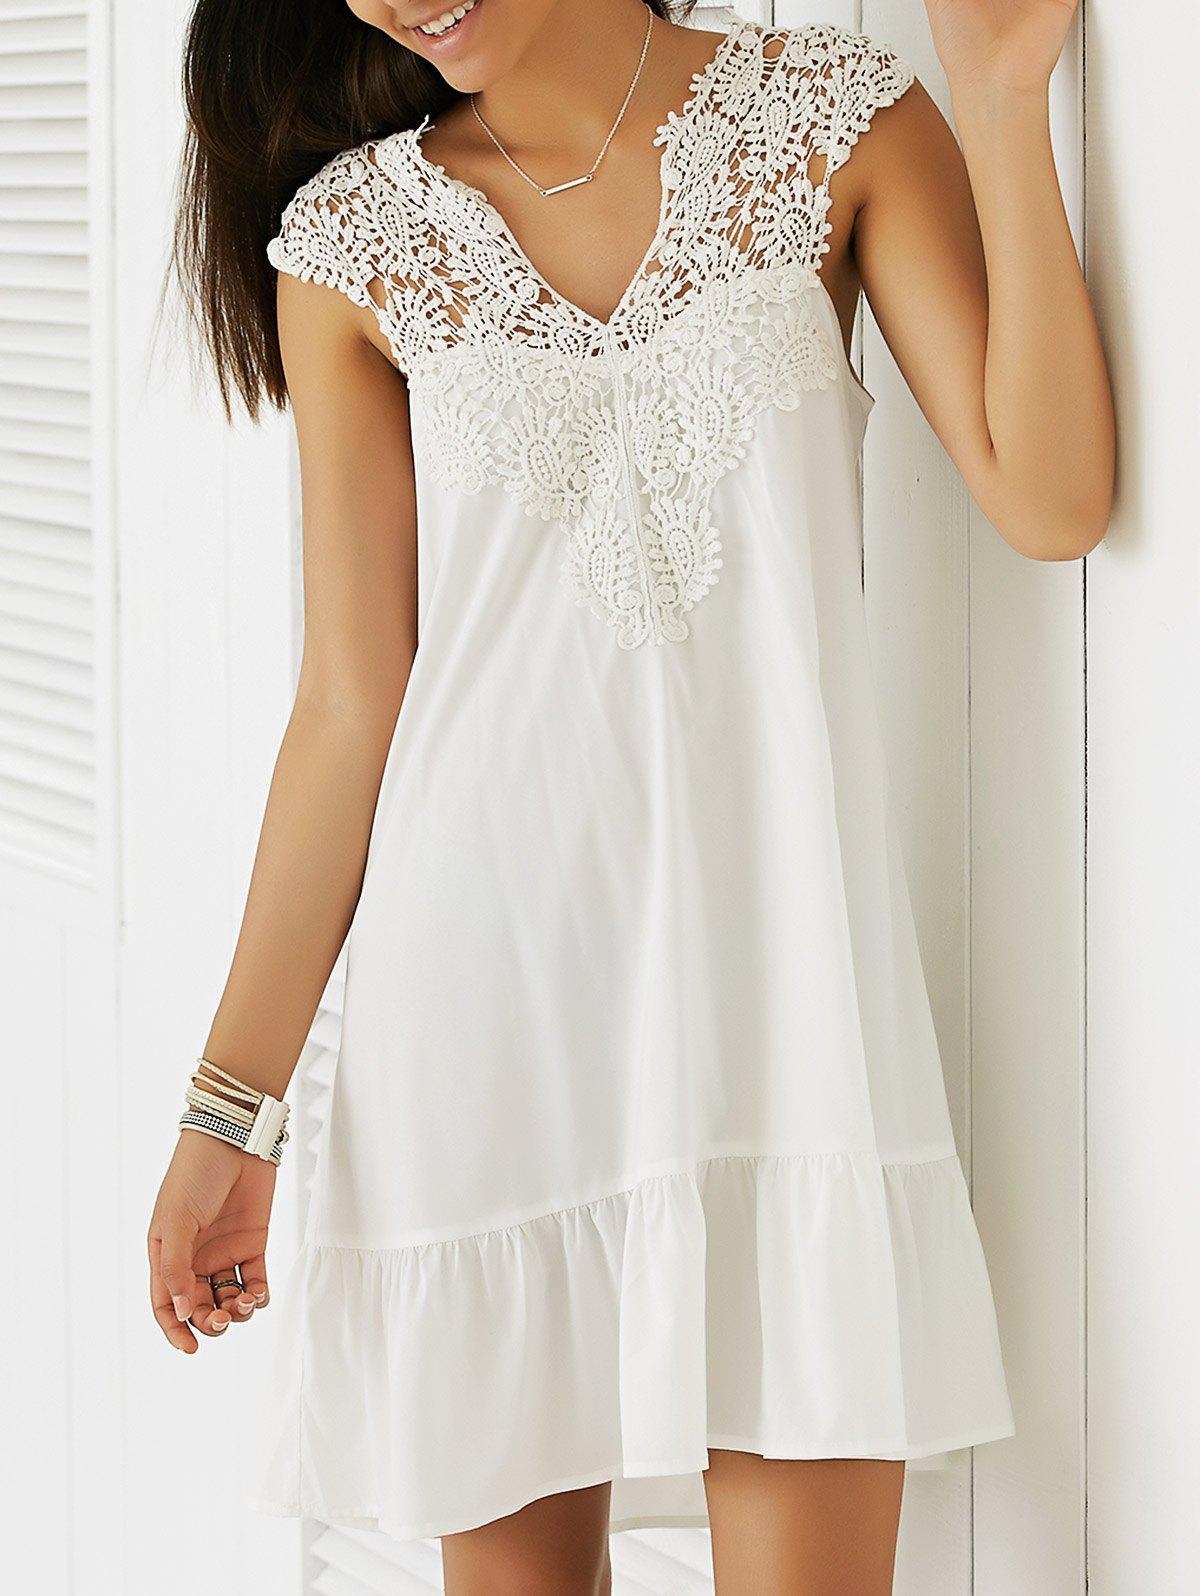 Casual Women's Sleeveless Cut-Out Lace Splicing Flounce Dress